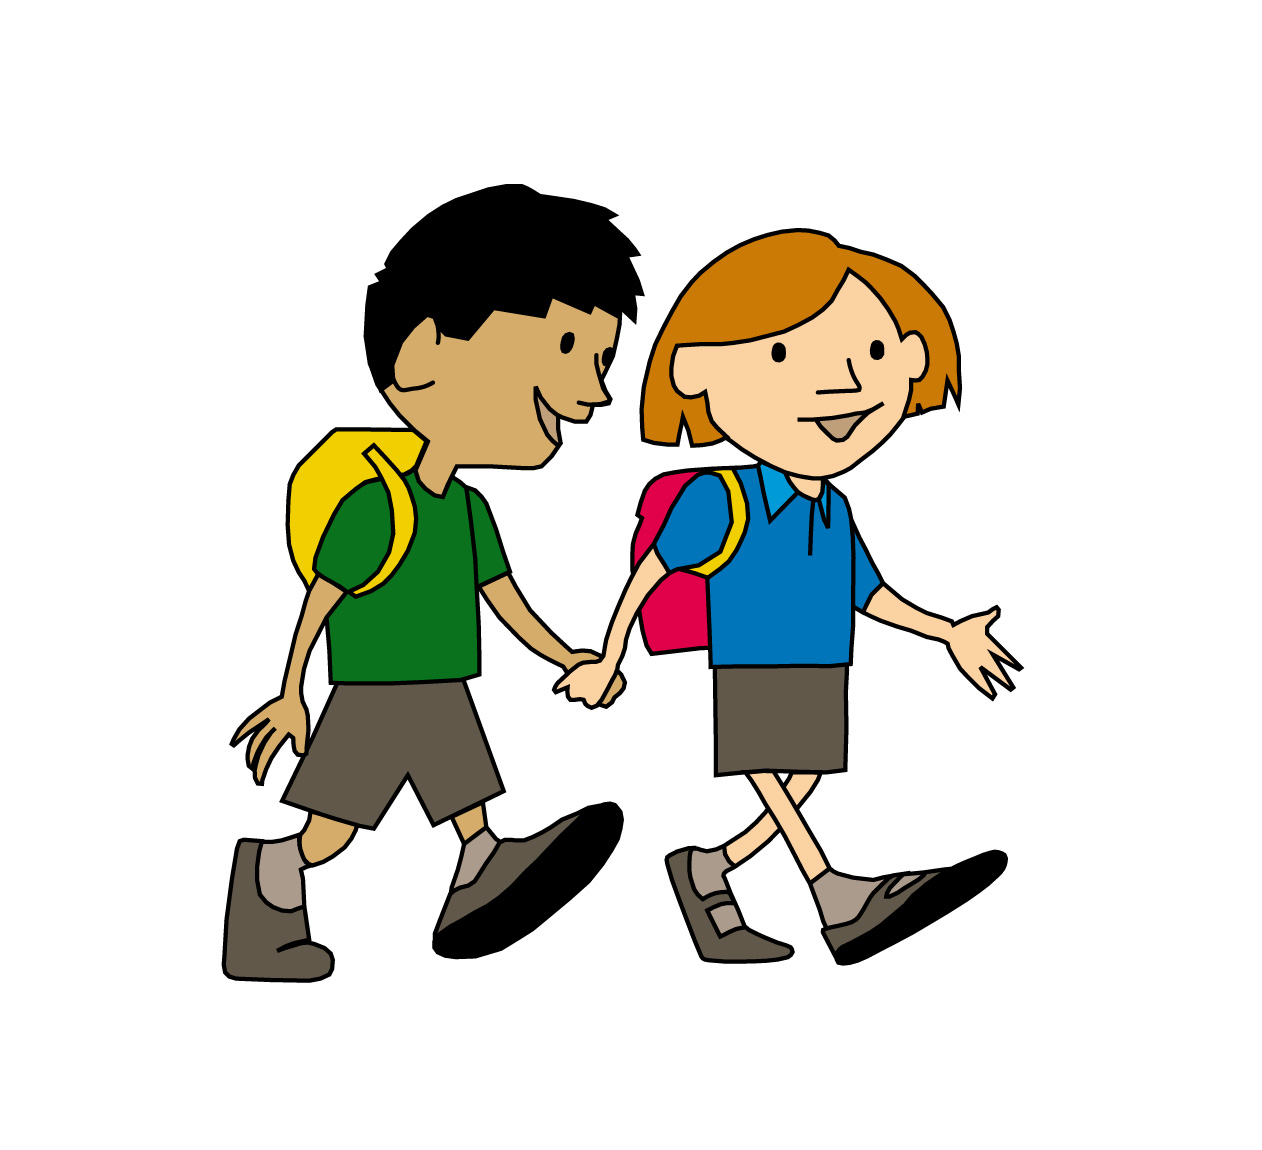 Alking to school clipart jpg transparent stock walk-to-school-clipart-8 - Woodborough Primary School jpg transparent stock